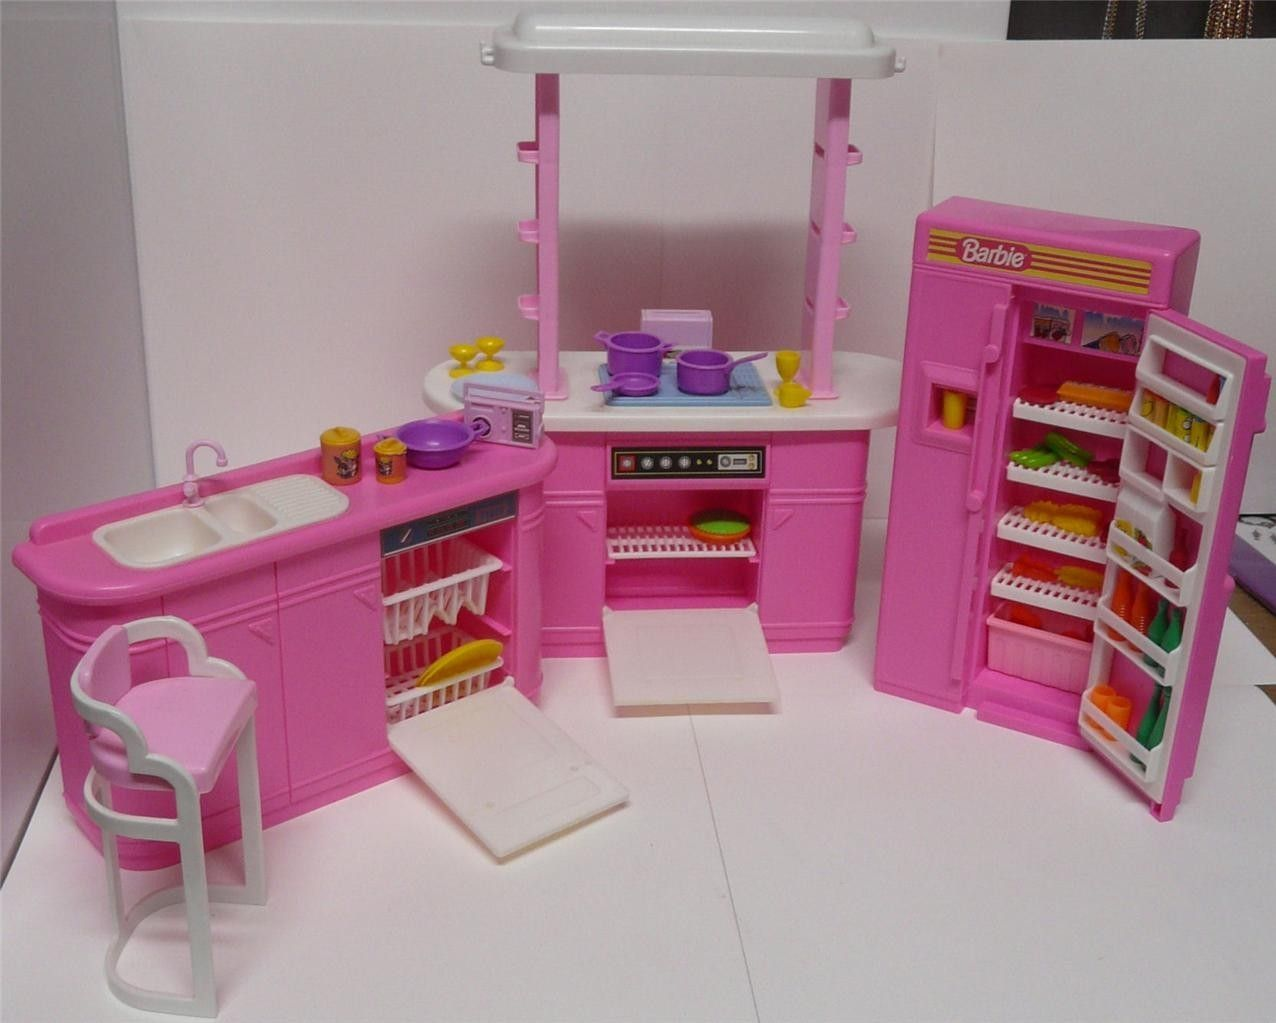 Barbie Kitchen Playset Furniture 1990 Arcotoys Mattel 8754 With intended for Barbie Furniture 90S 35151 #barbiefurniture